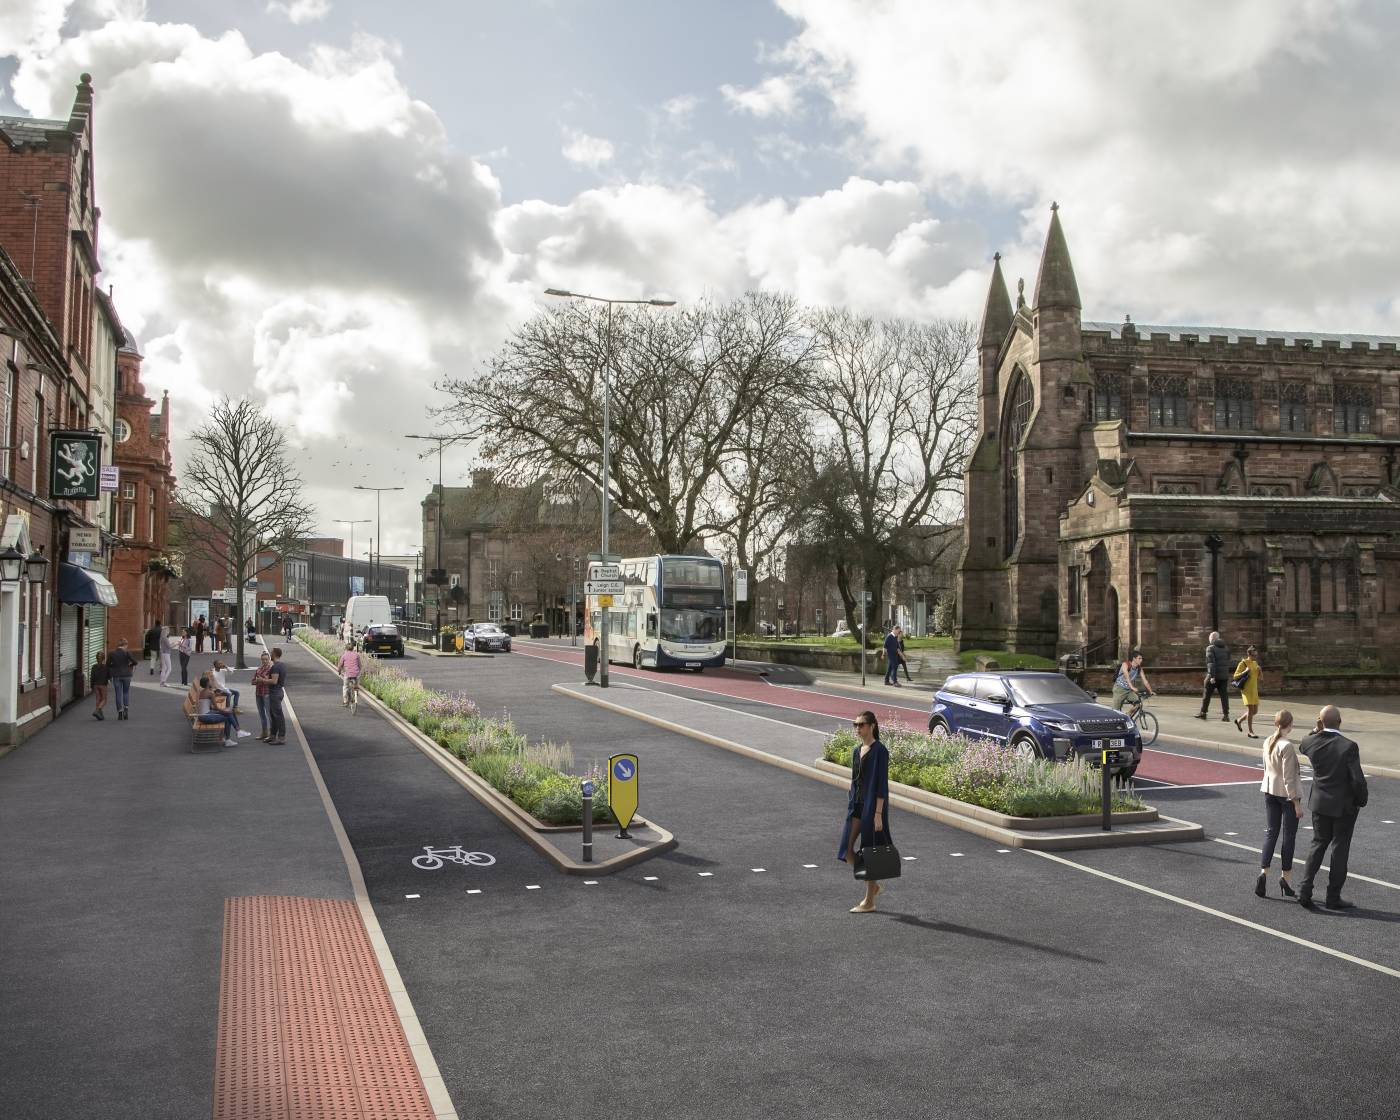 A visualisation of how cycling and walking facilities in Leigh could look